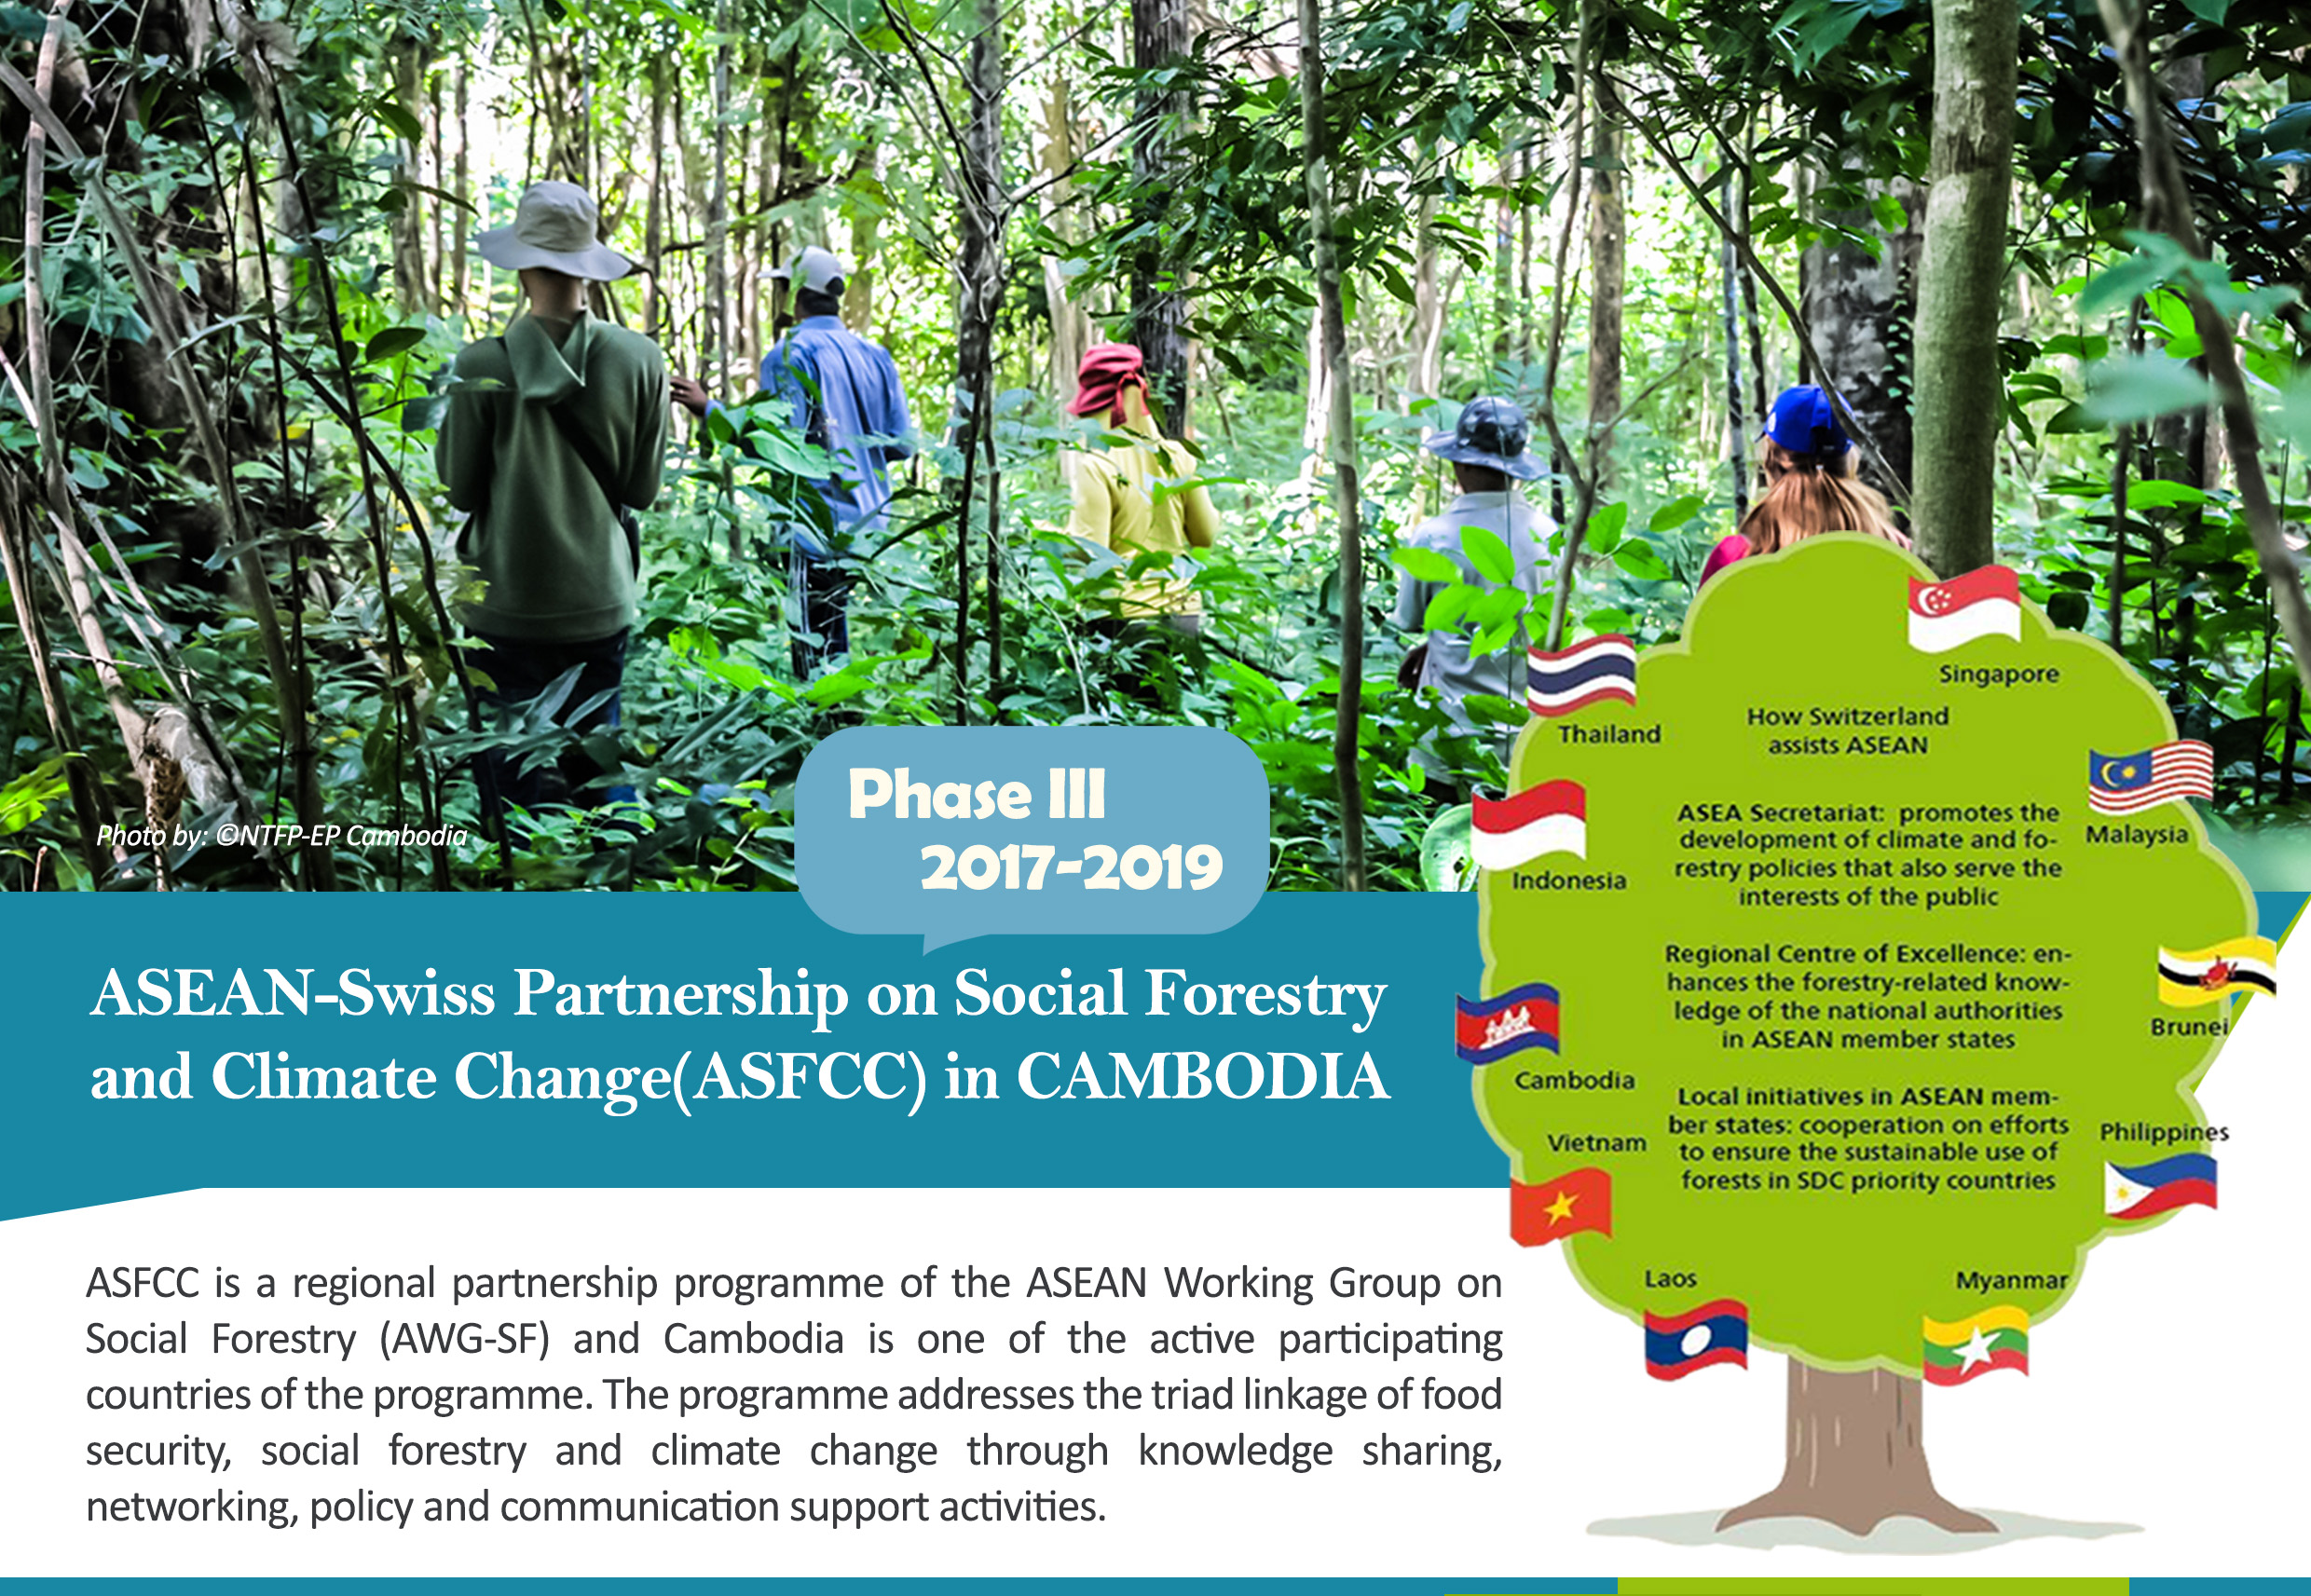 ASEAN-Swiss Partnership on Social Forestry and Climate Change(ASFCC) in CAMBODIA Phase III 2017-2019